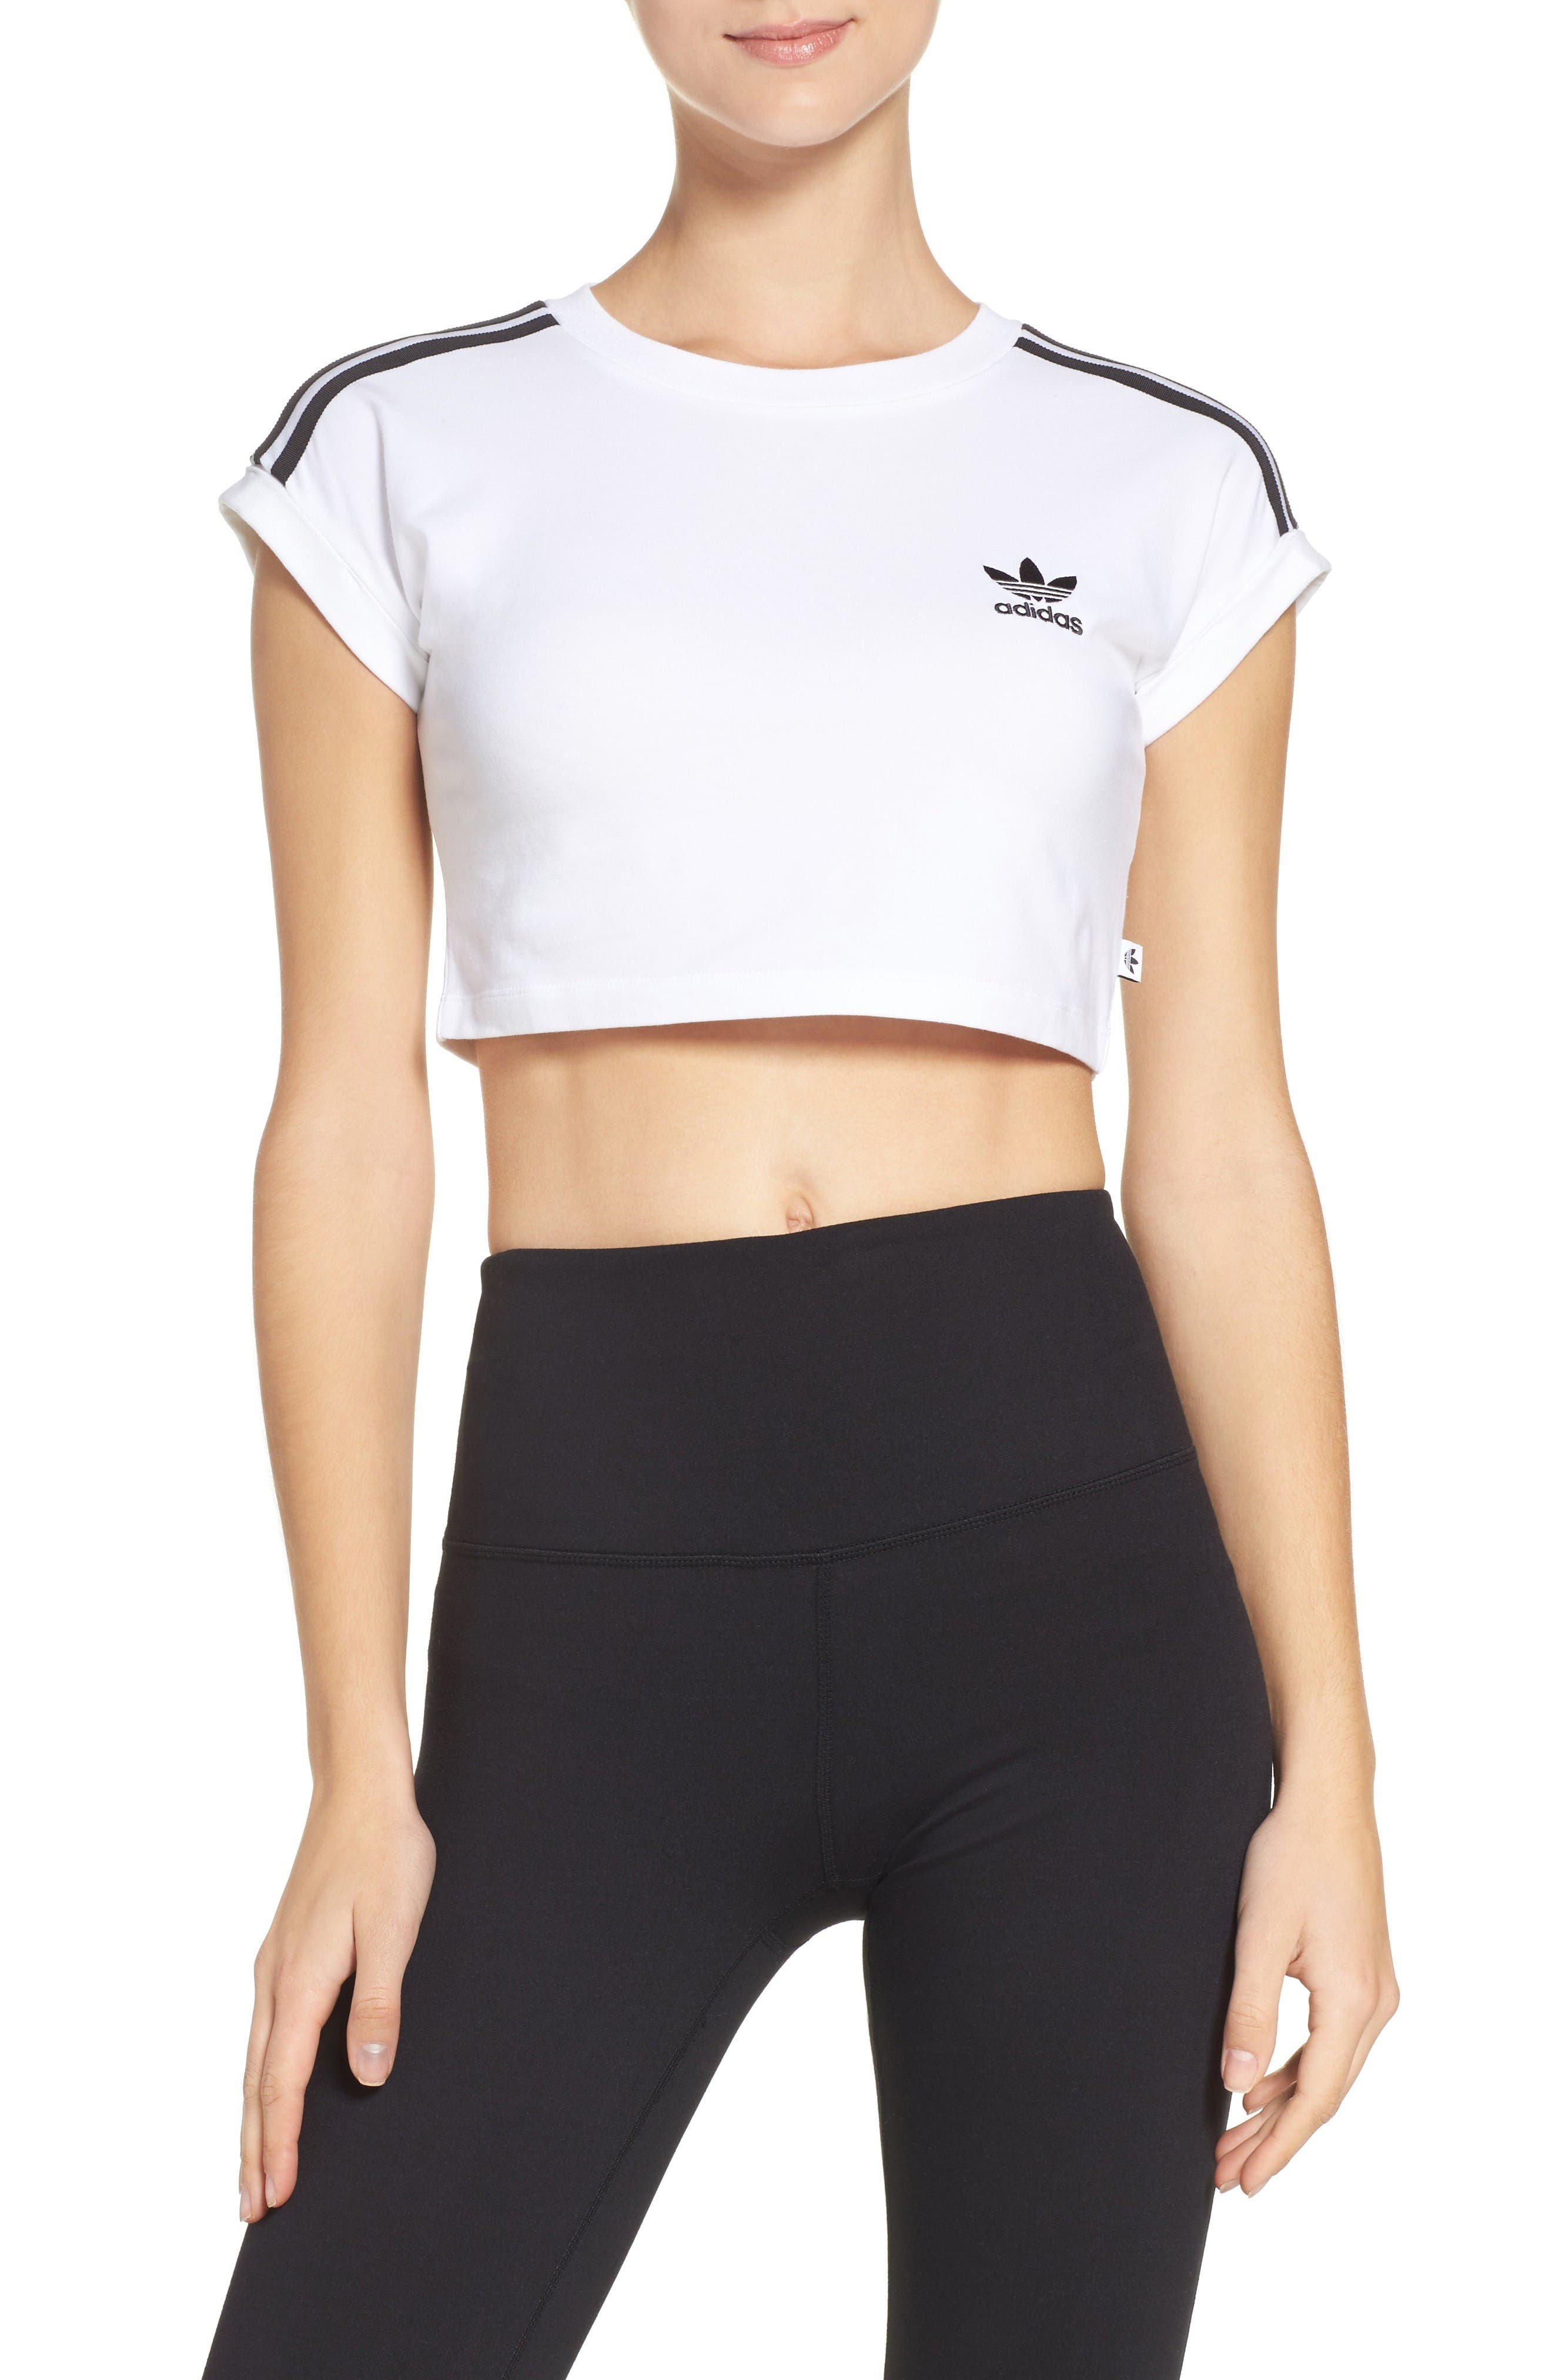 Alternate Image 1 Selected - adidas 3-Stripes Crop Top